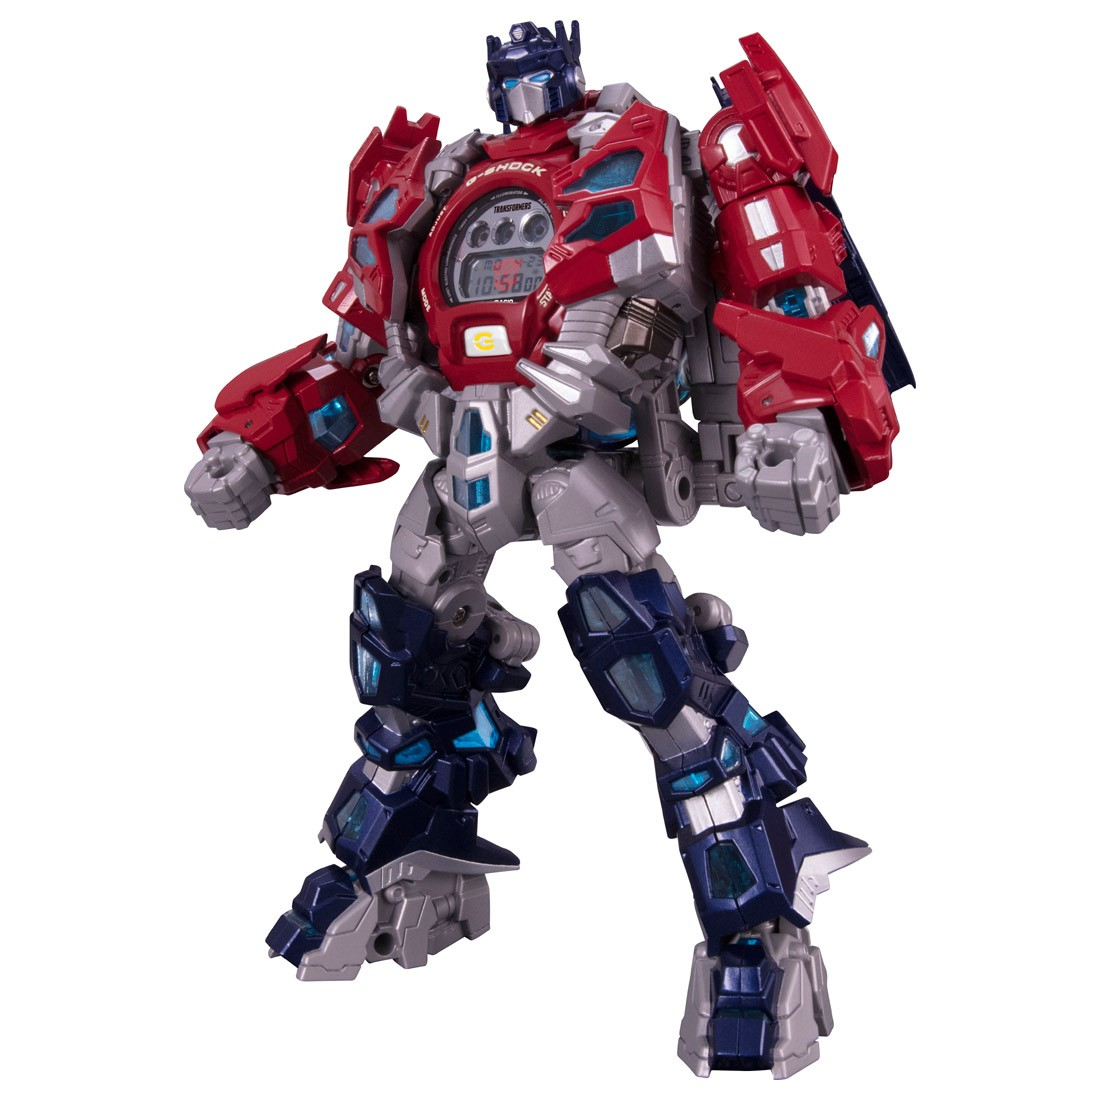 new stock photos and price for g-shock x transformers optimus prime